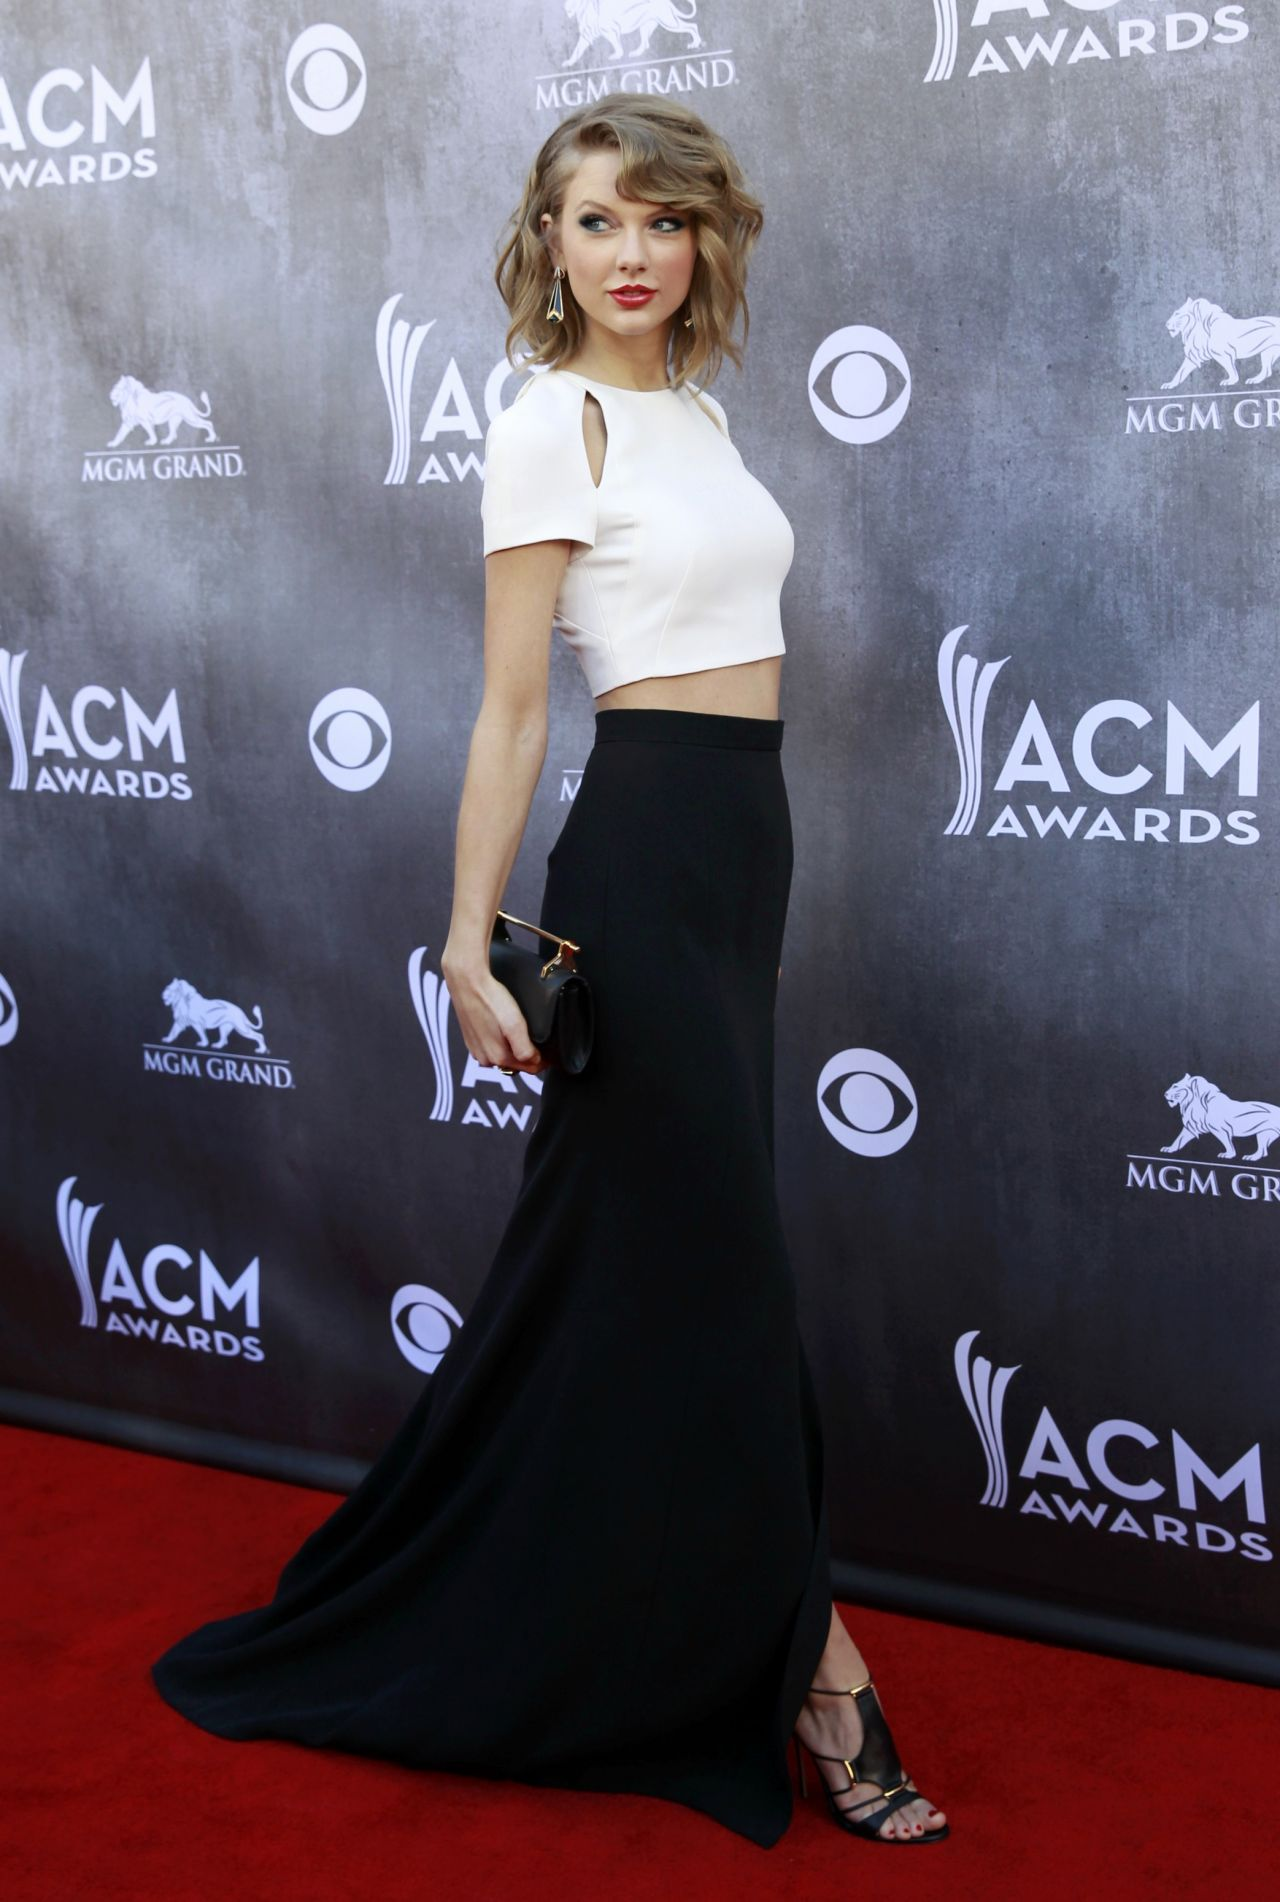 Taylor Swift in J Mendel - 2014 Academy Of Country Music Awards in Las Vegas